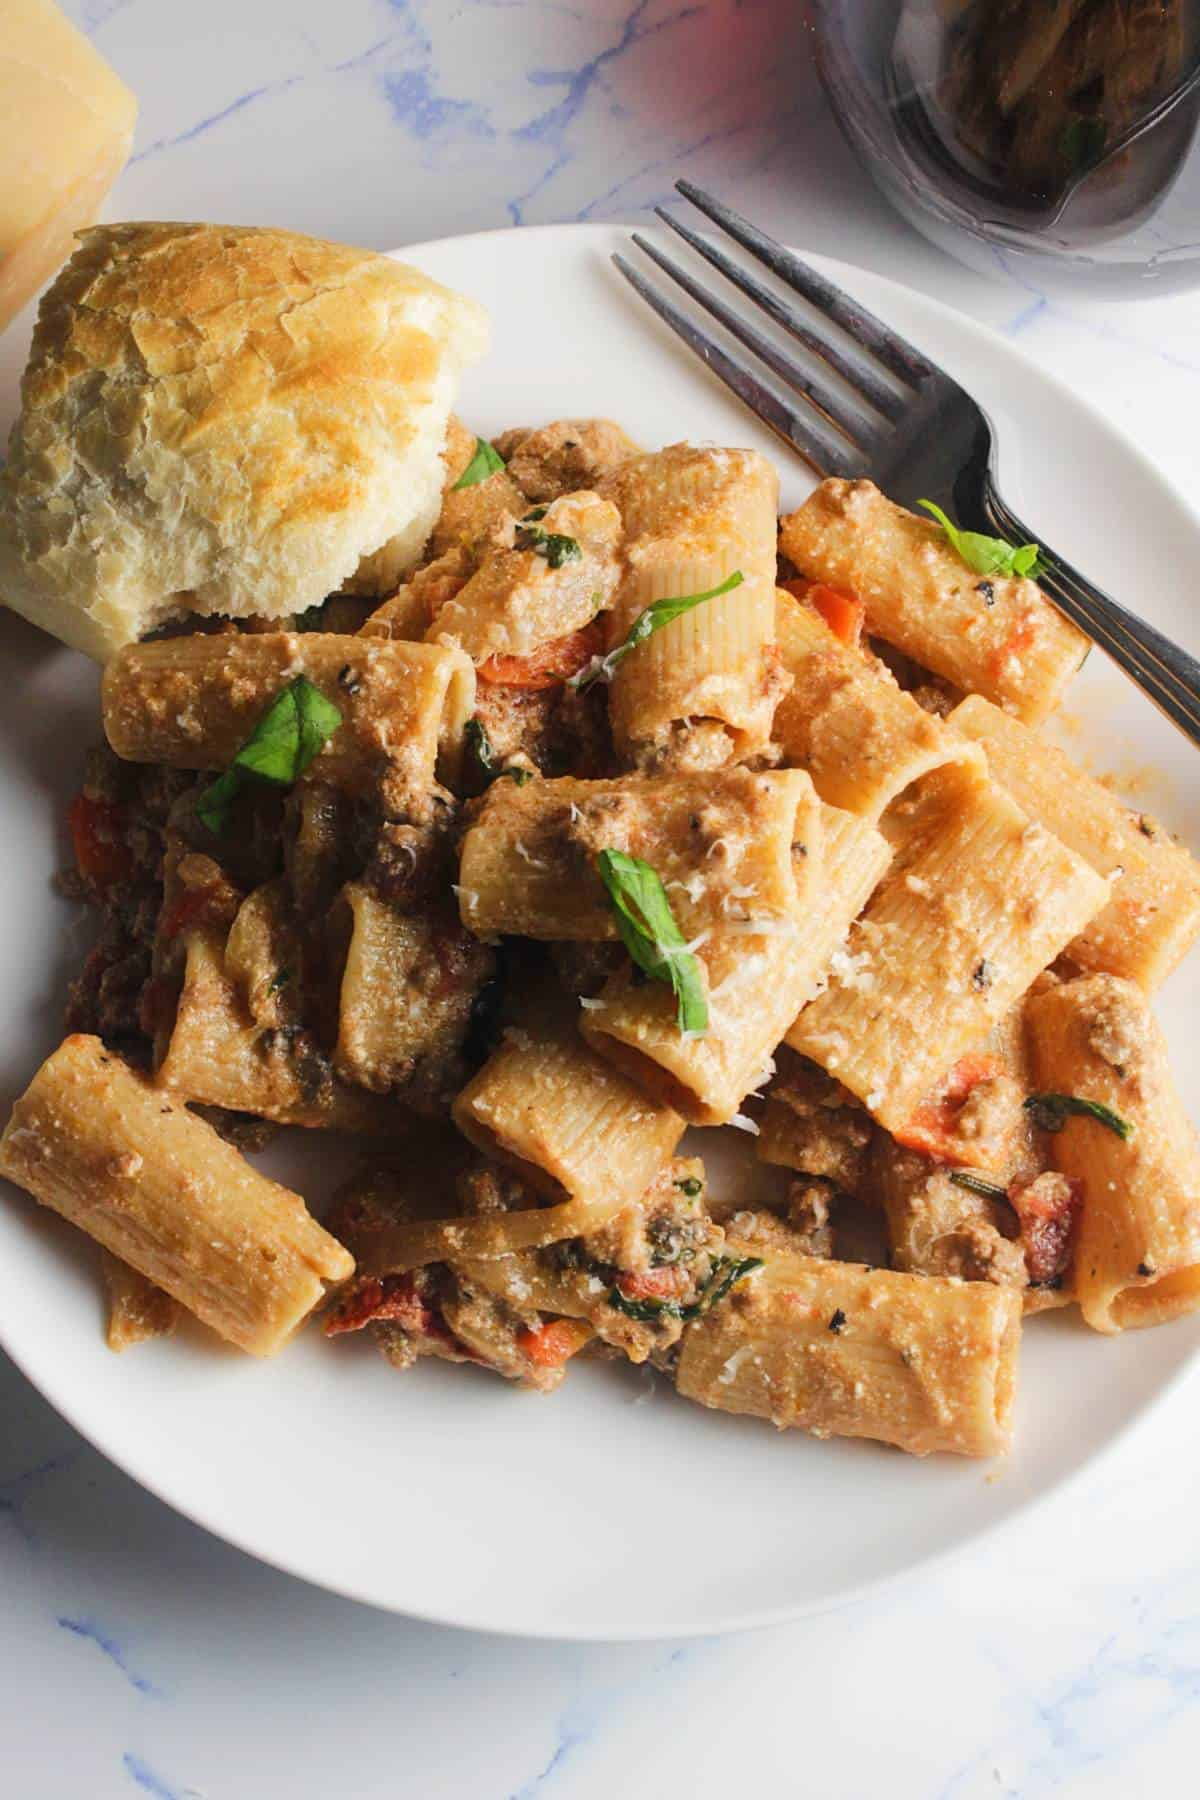 rigatoni tossed with lamb ragu sauce, served on a white. plate.